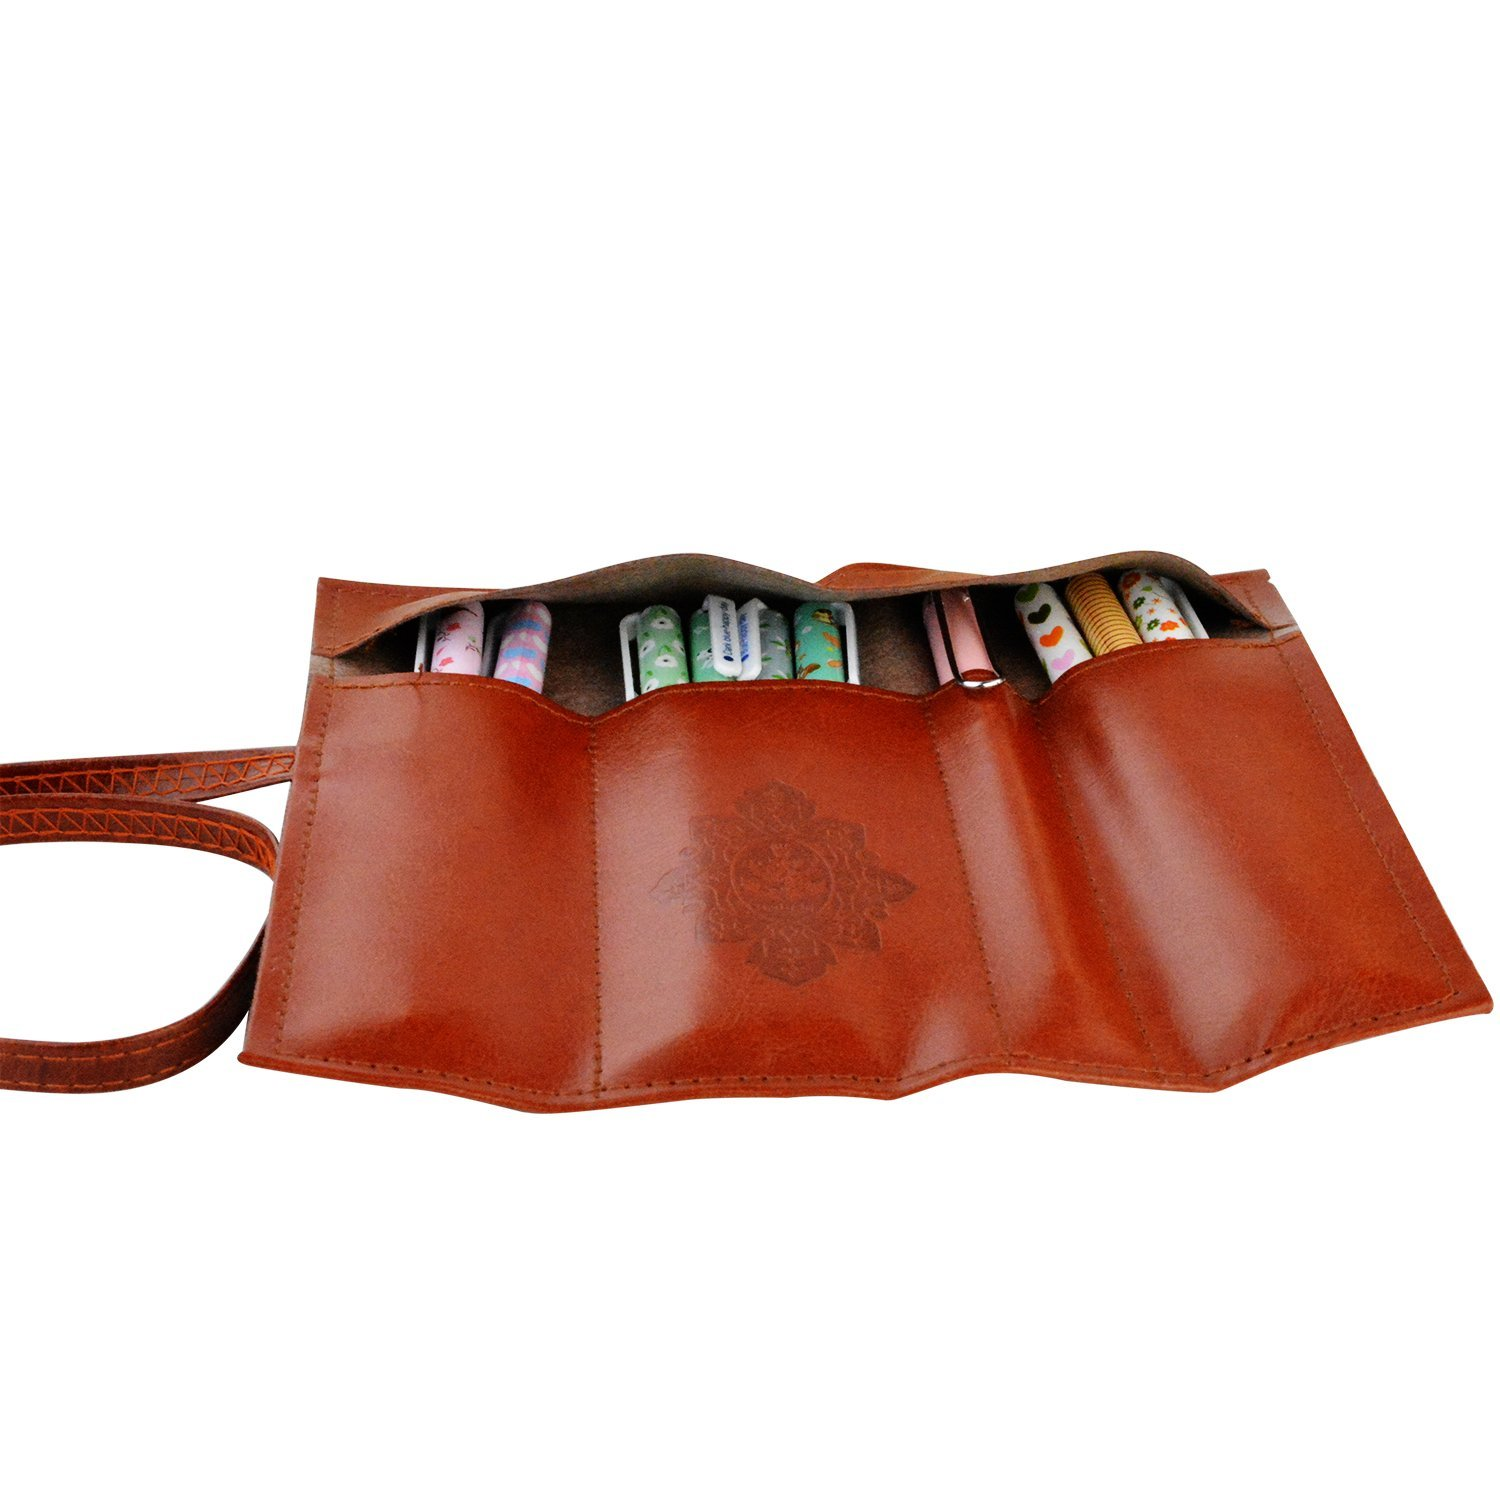 pen case - Leather Pen Bag Pencil Case Makeup Pouch